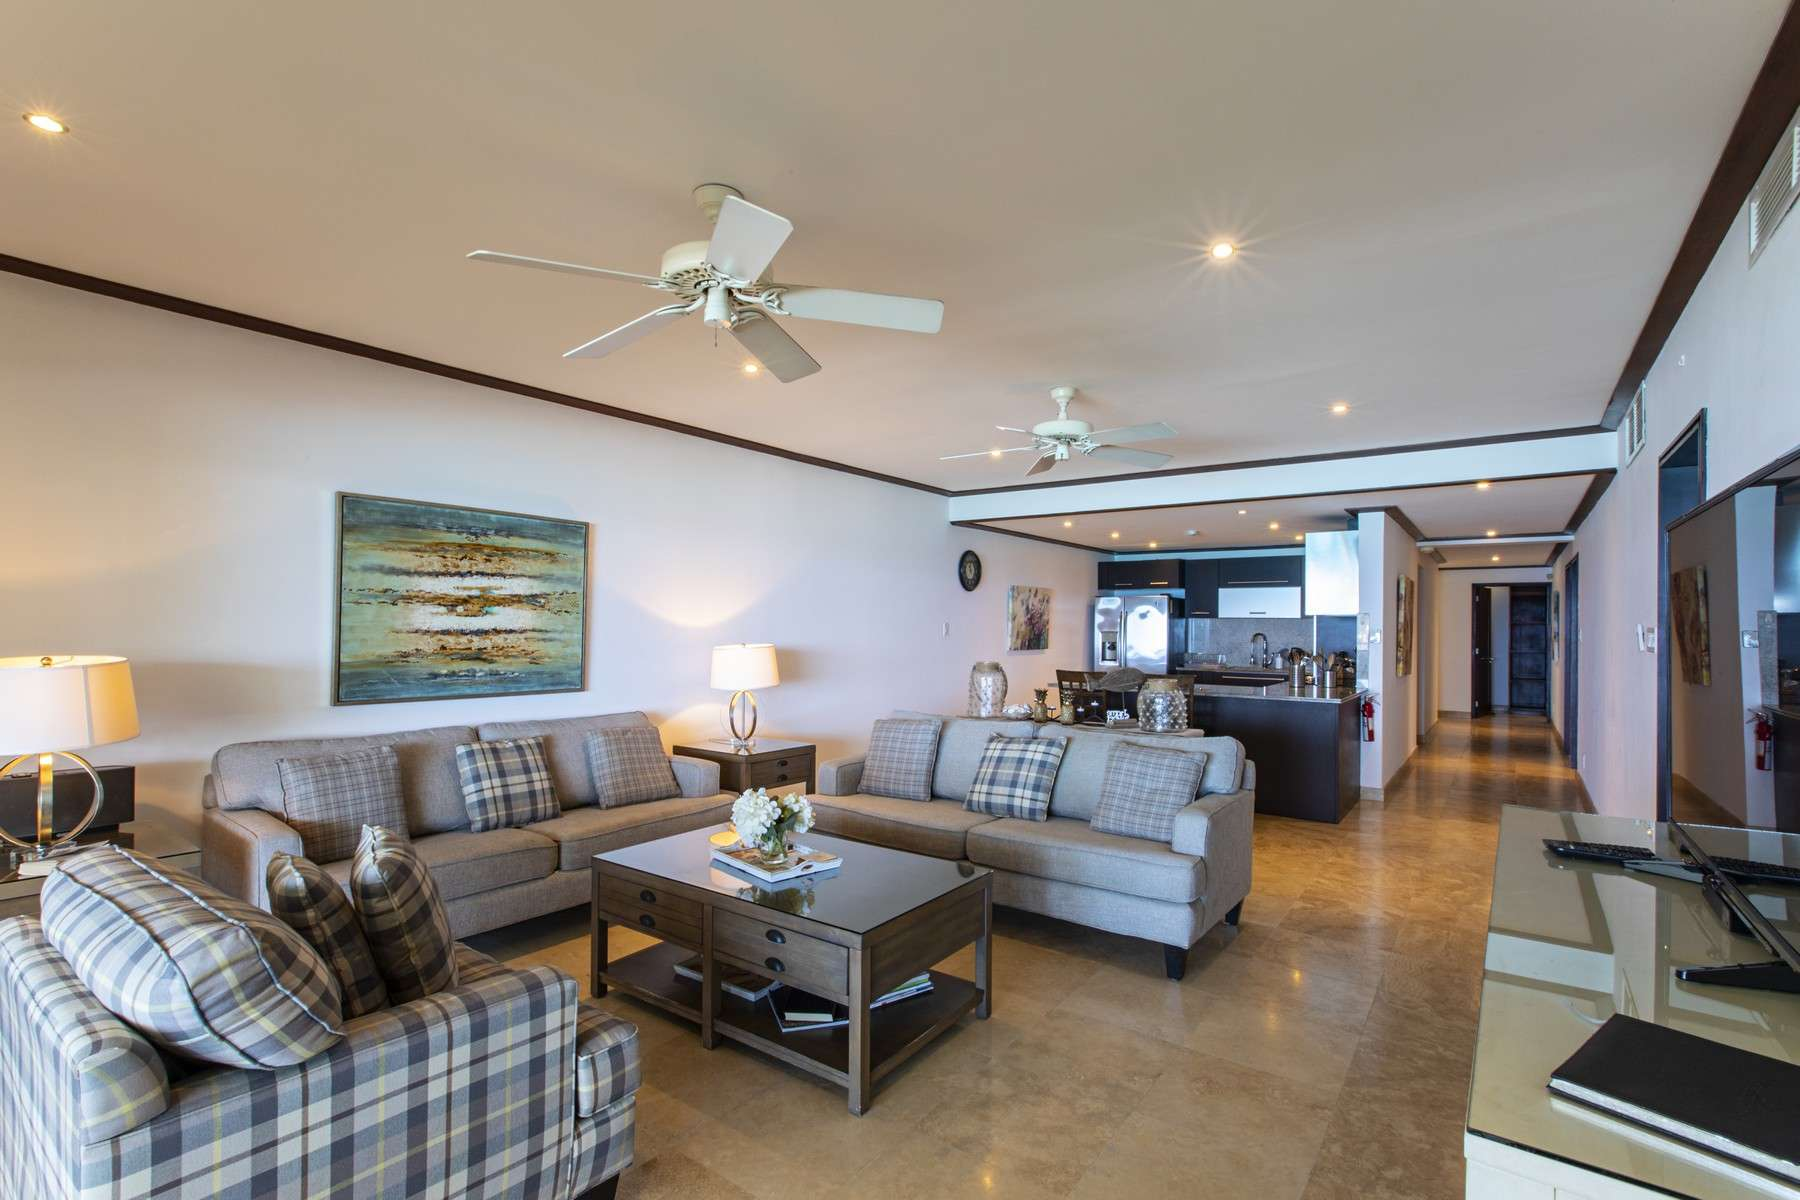 Luxury villa rentals caribbean - Barbados - St james - Coral cove - Green Fields - Image 1/13